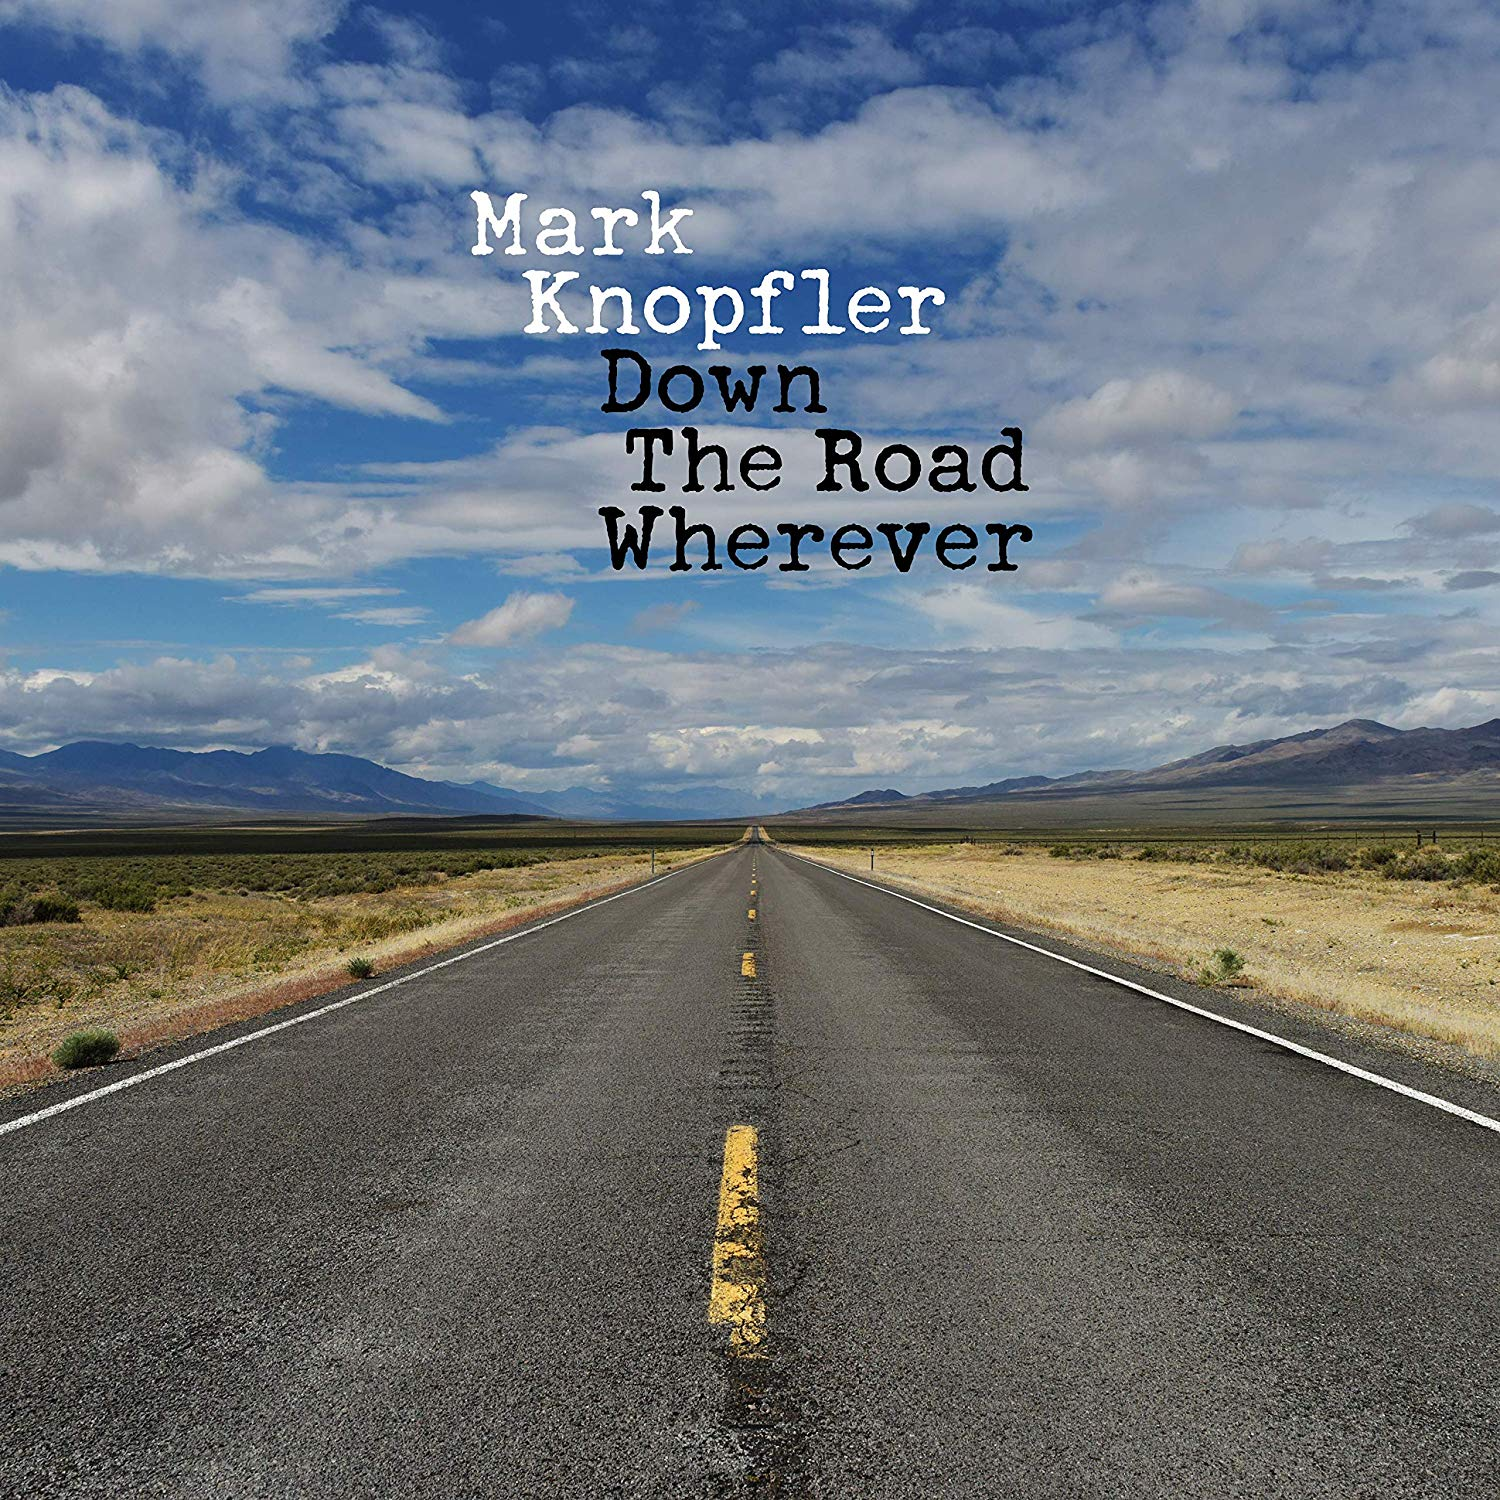 Mark Knopfler - Down The Road Wherever [2LP]